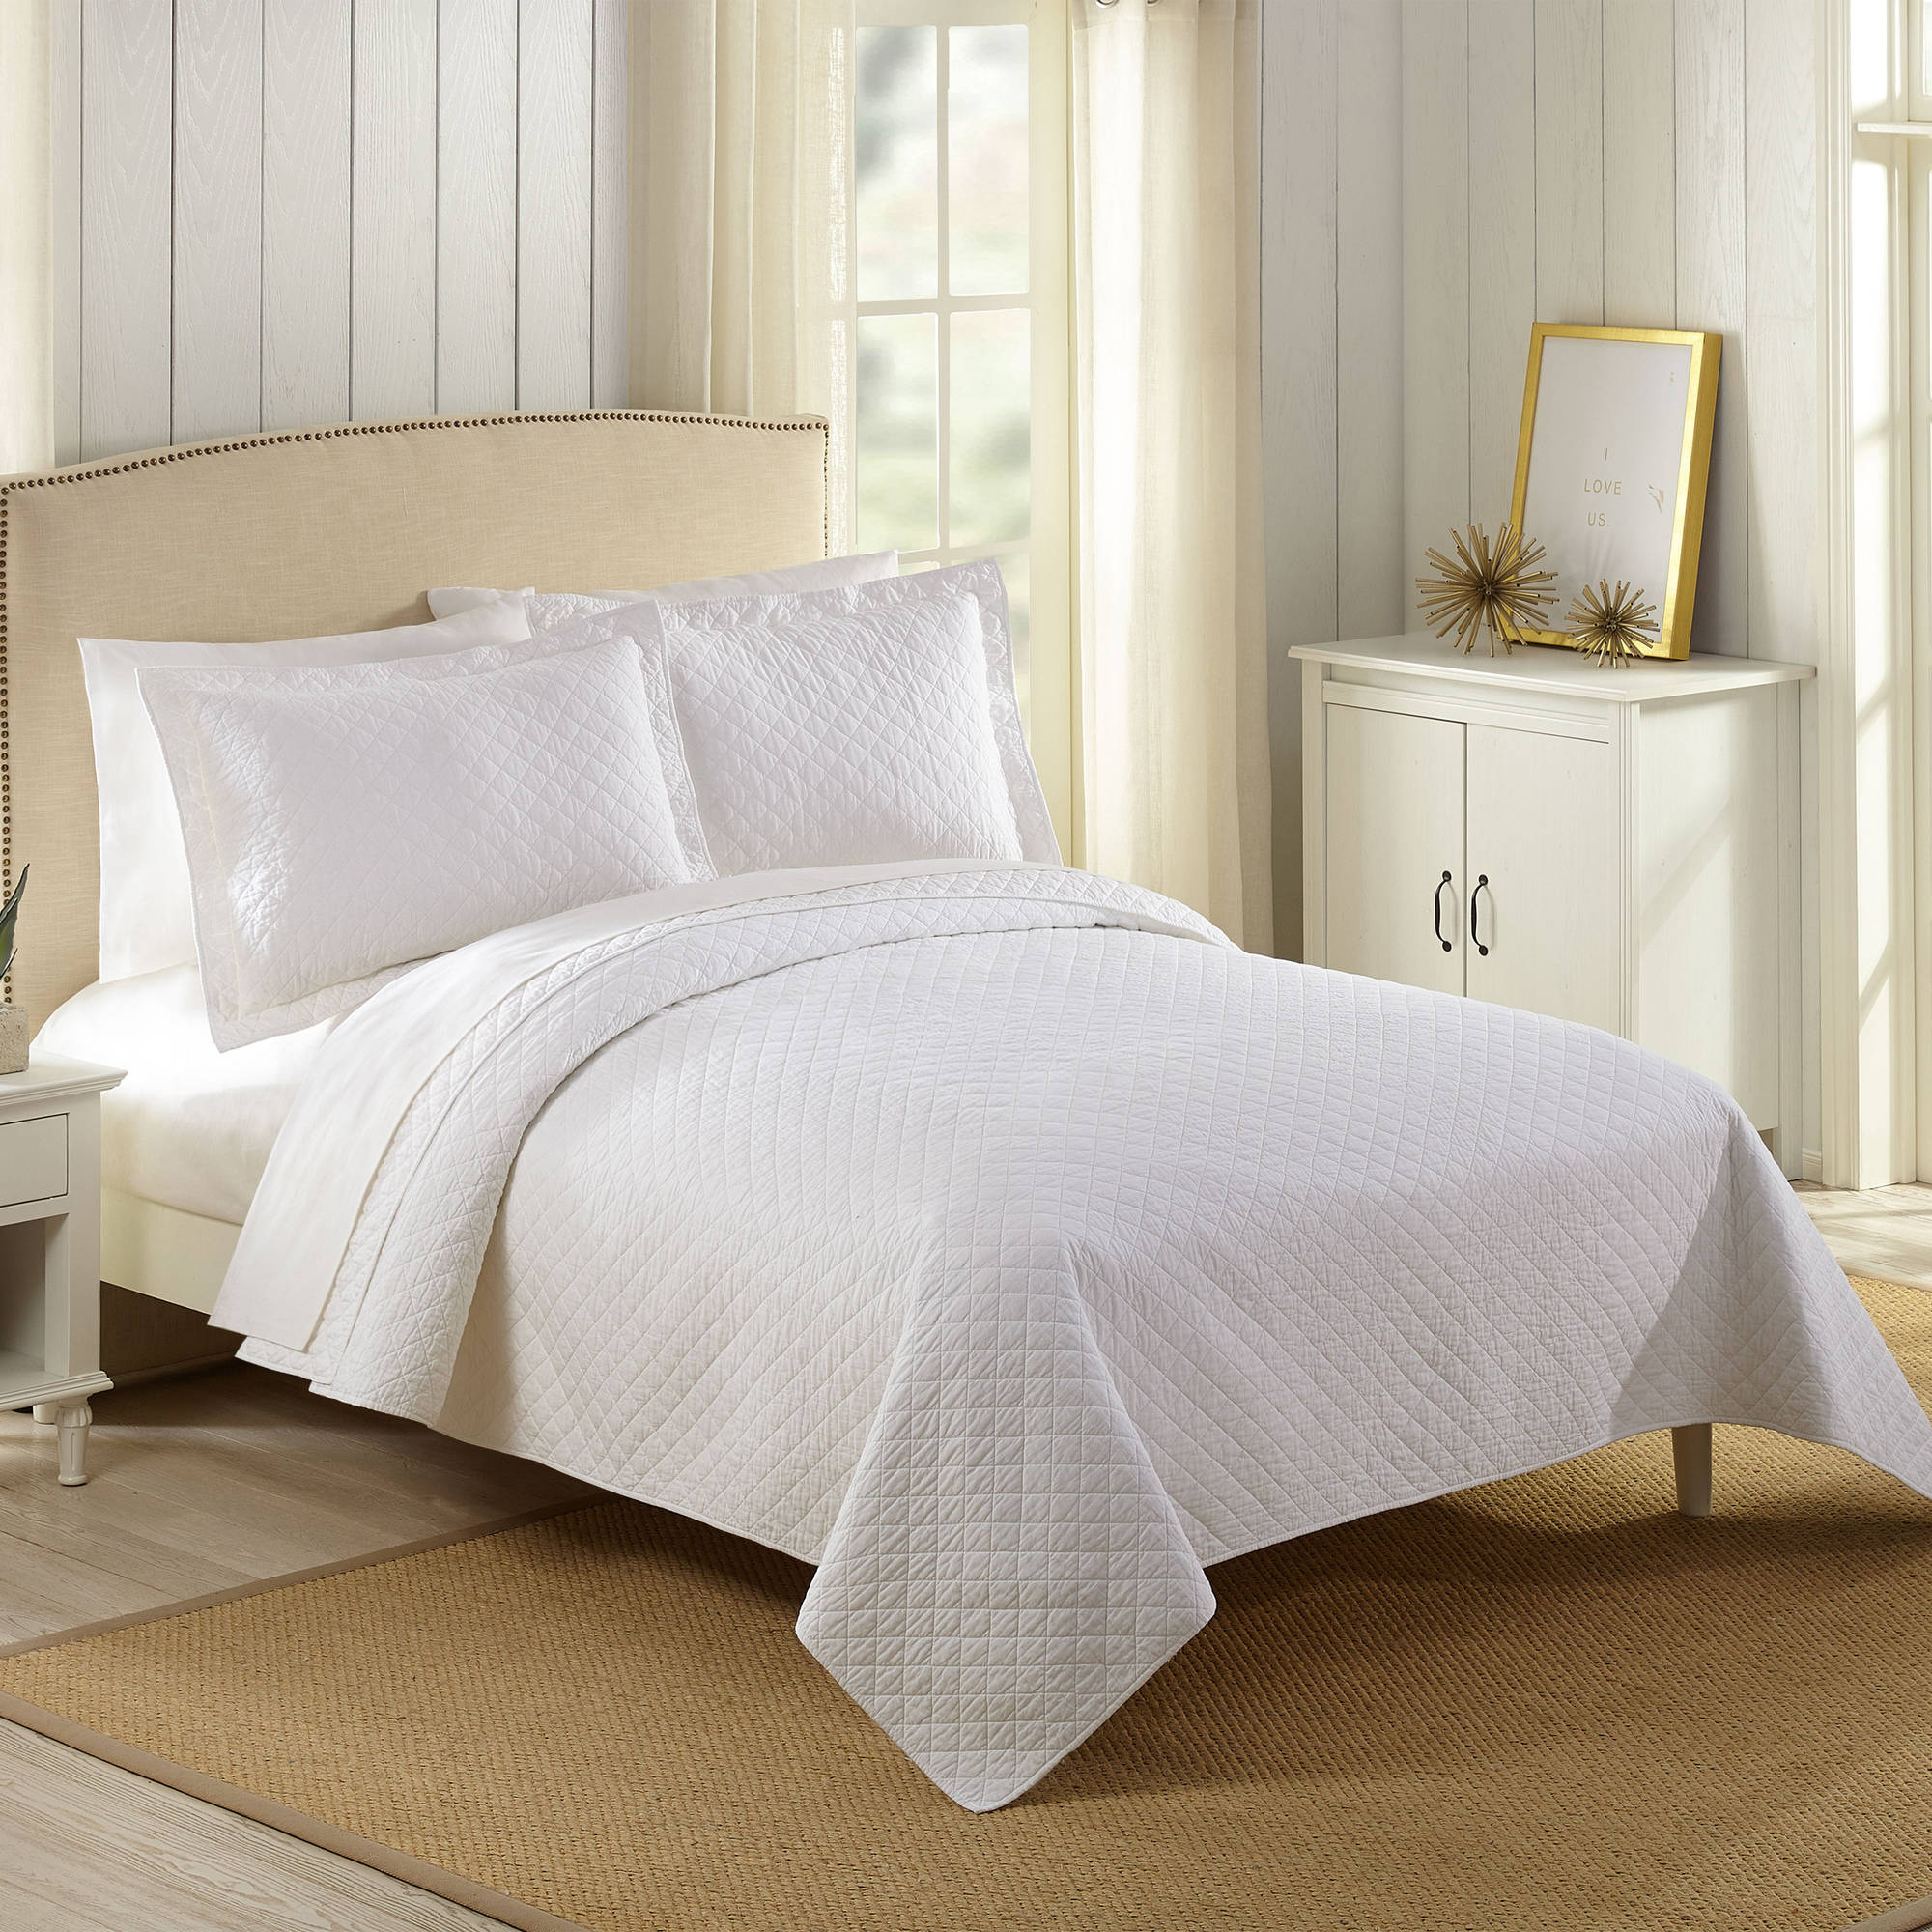 Better Homes and Gardens Solid Cotton Full/Queen Quilt